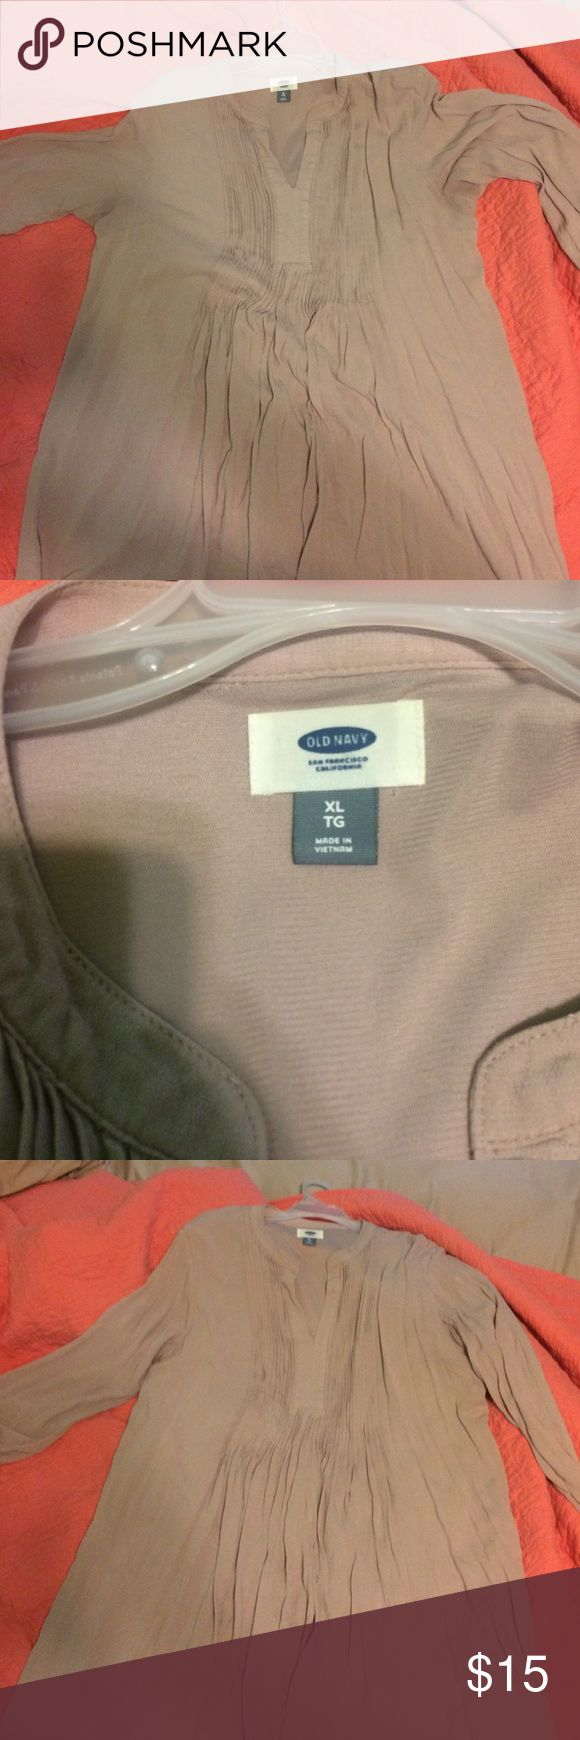 Old navy tunic/dress Nude tunic/dress. Looks super cute with leggings and boots. Old Navy Tops Tunics